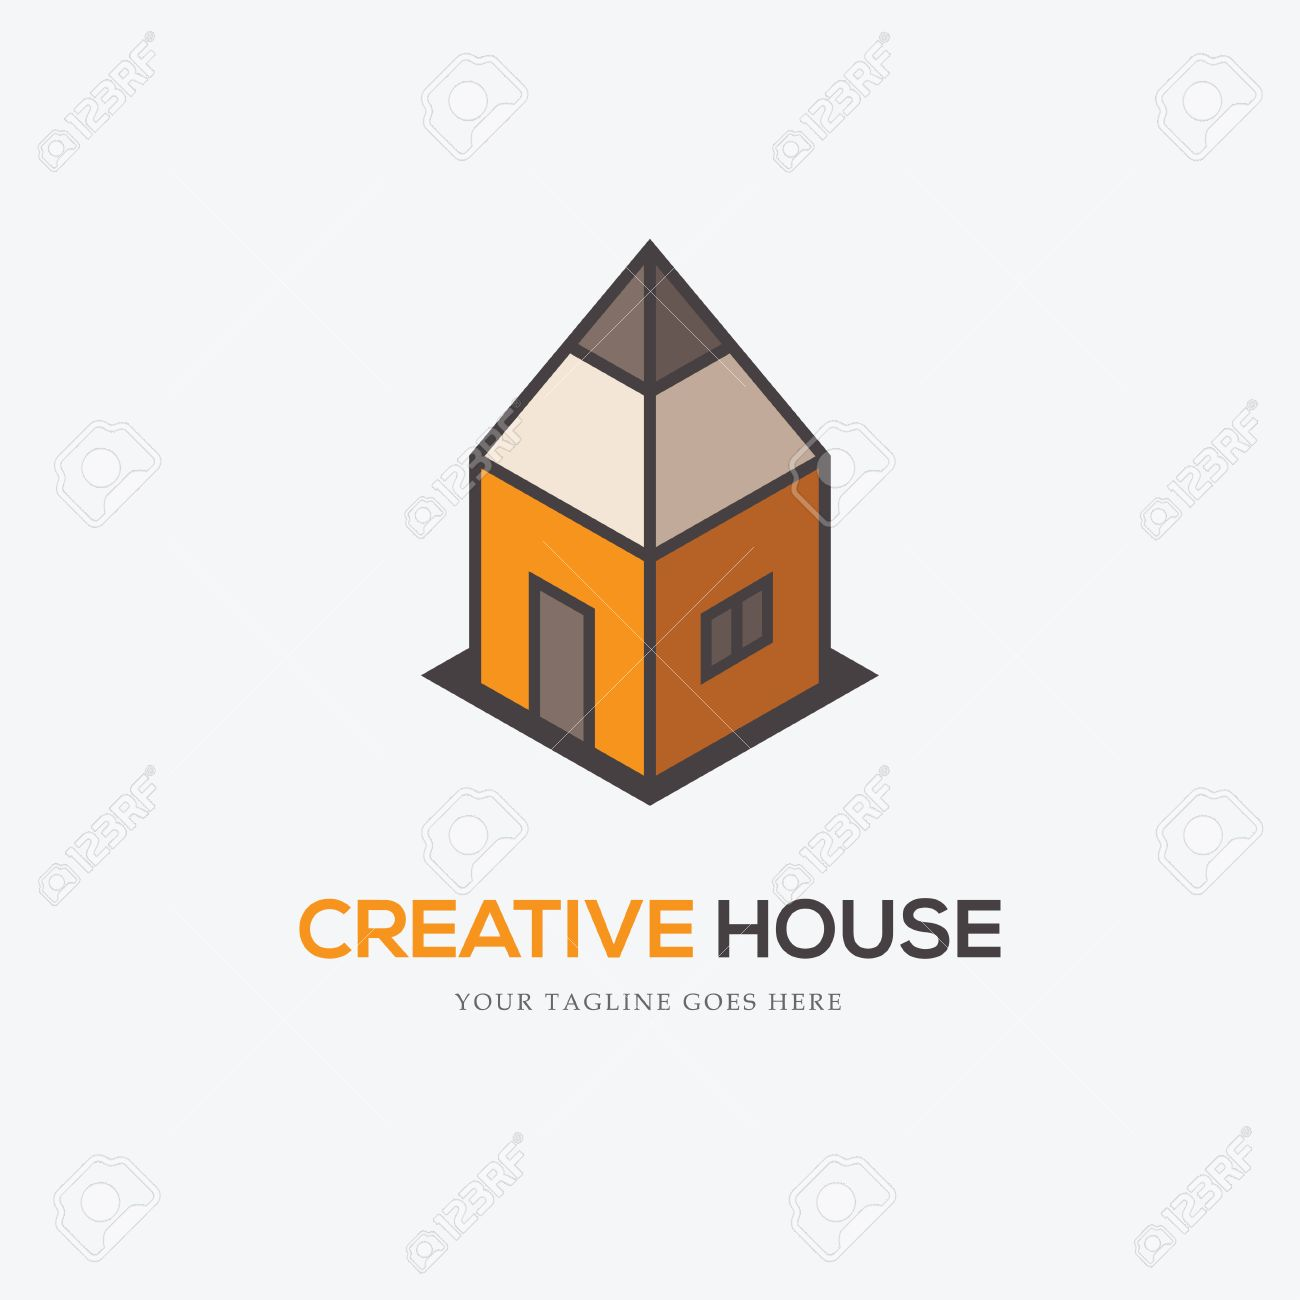 Awesome Creative Logo With Pencil Looking Like A House. Can Be Used For Interior Or  Exterior